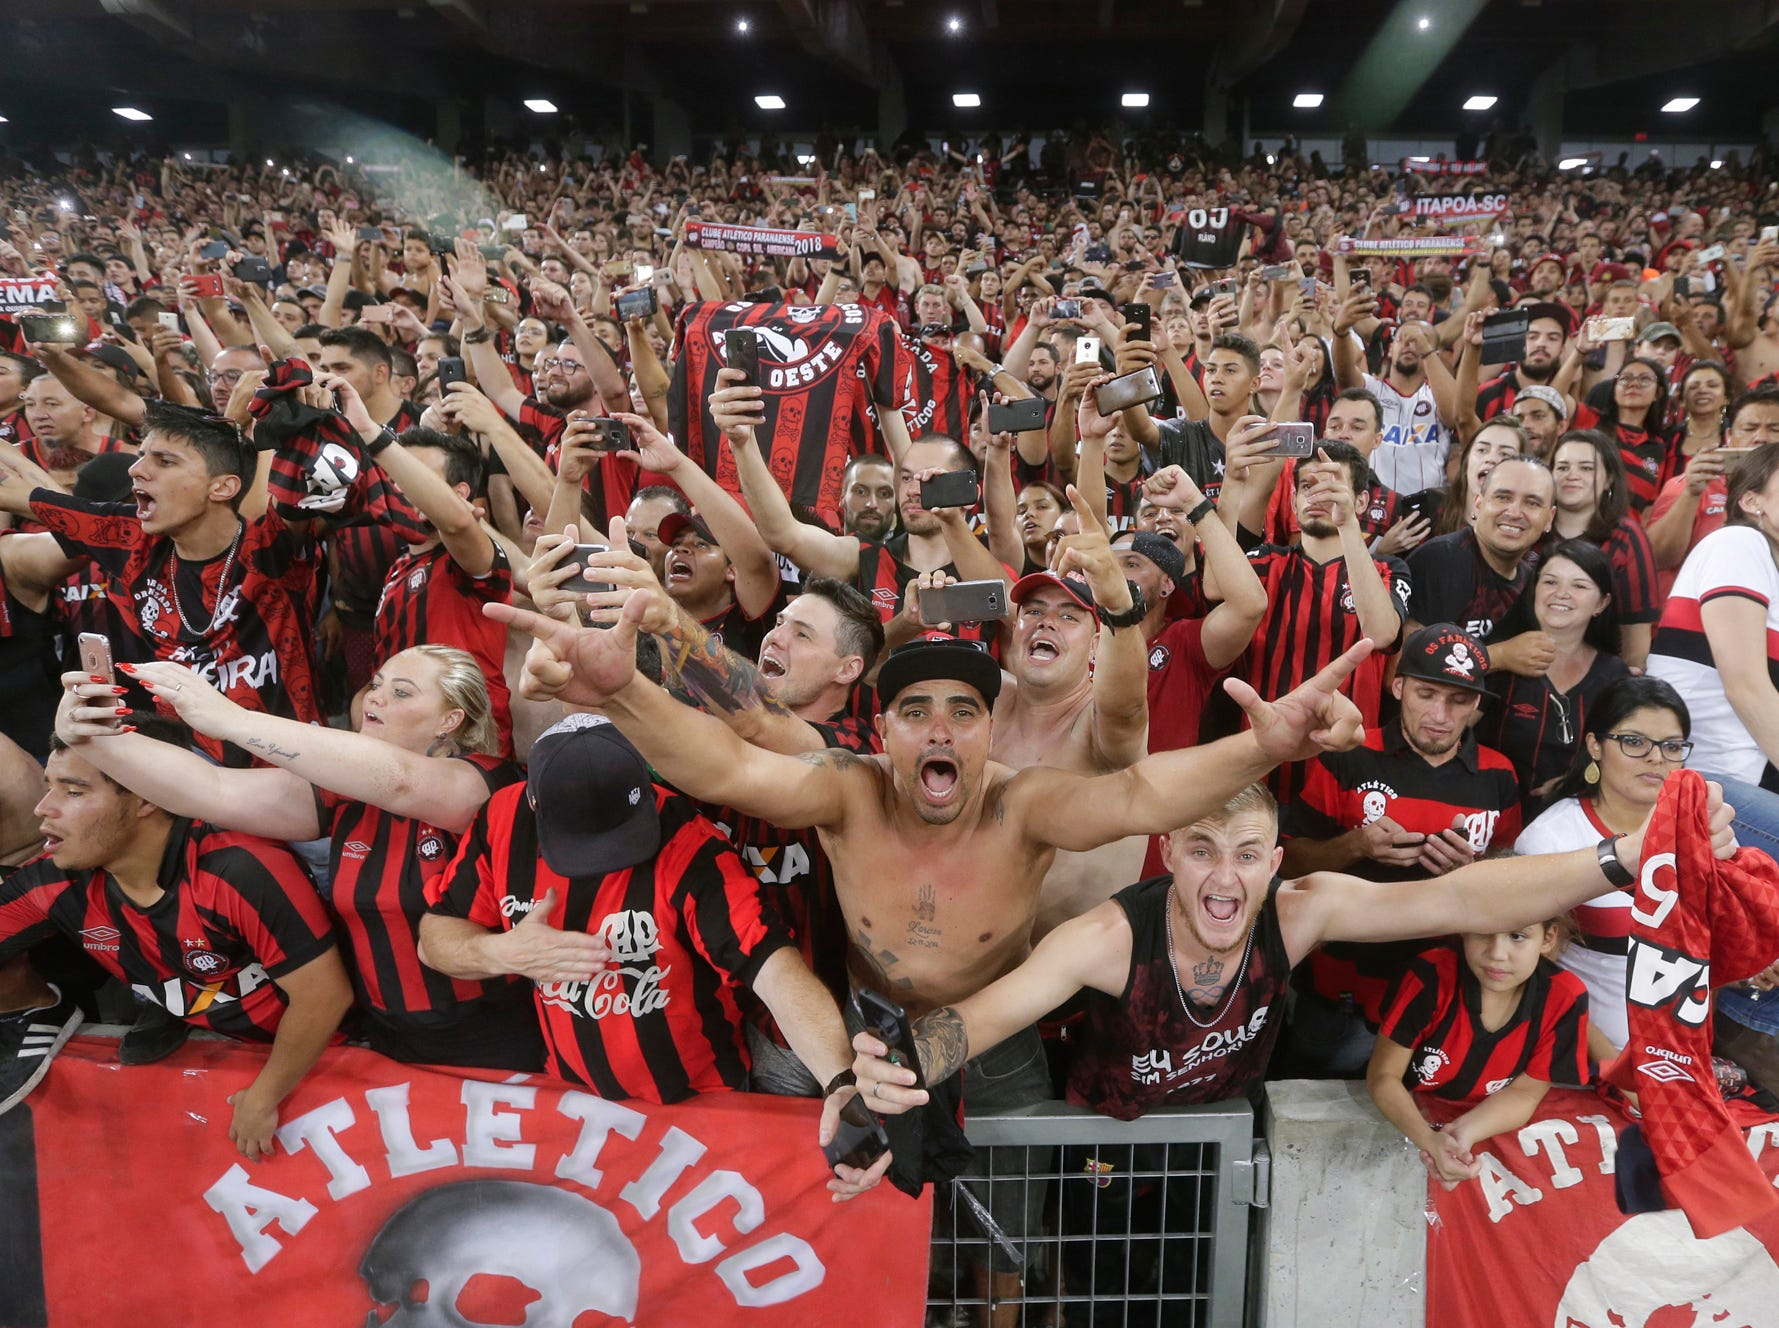 Fans of Brazil's Atletico Paranaense celebrate their team's 4-3 victory over Colombia's Junior after a penalty kick shoot-out, and clenching the title of the Copa Sudamericana tournament at Arena da Baixada stadium in Curitiba, Brazil, Thursday, Dec. 13, 2018. (AP Photo/Victor Caivano)